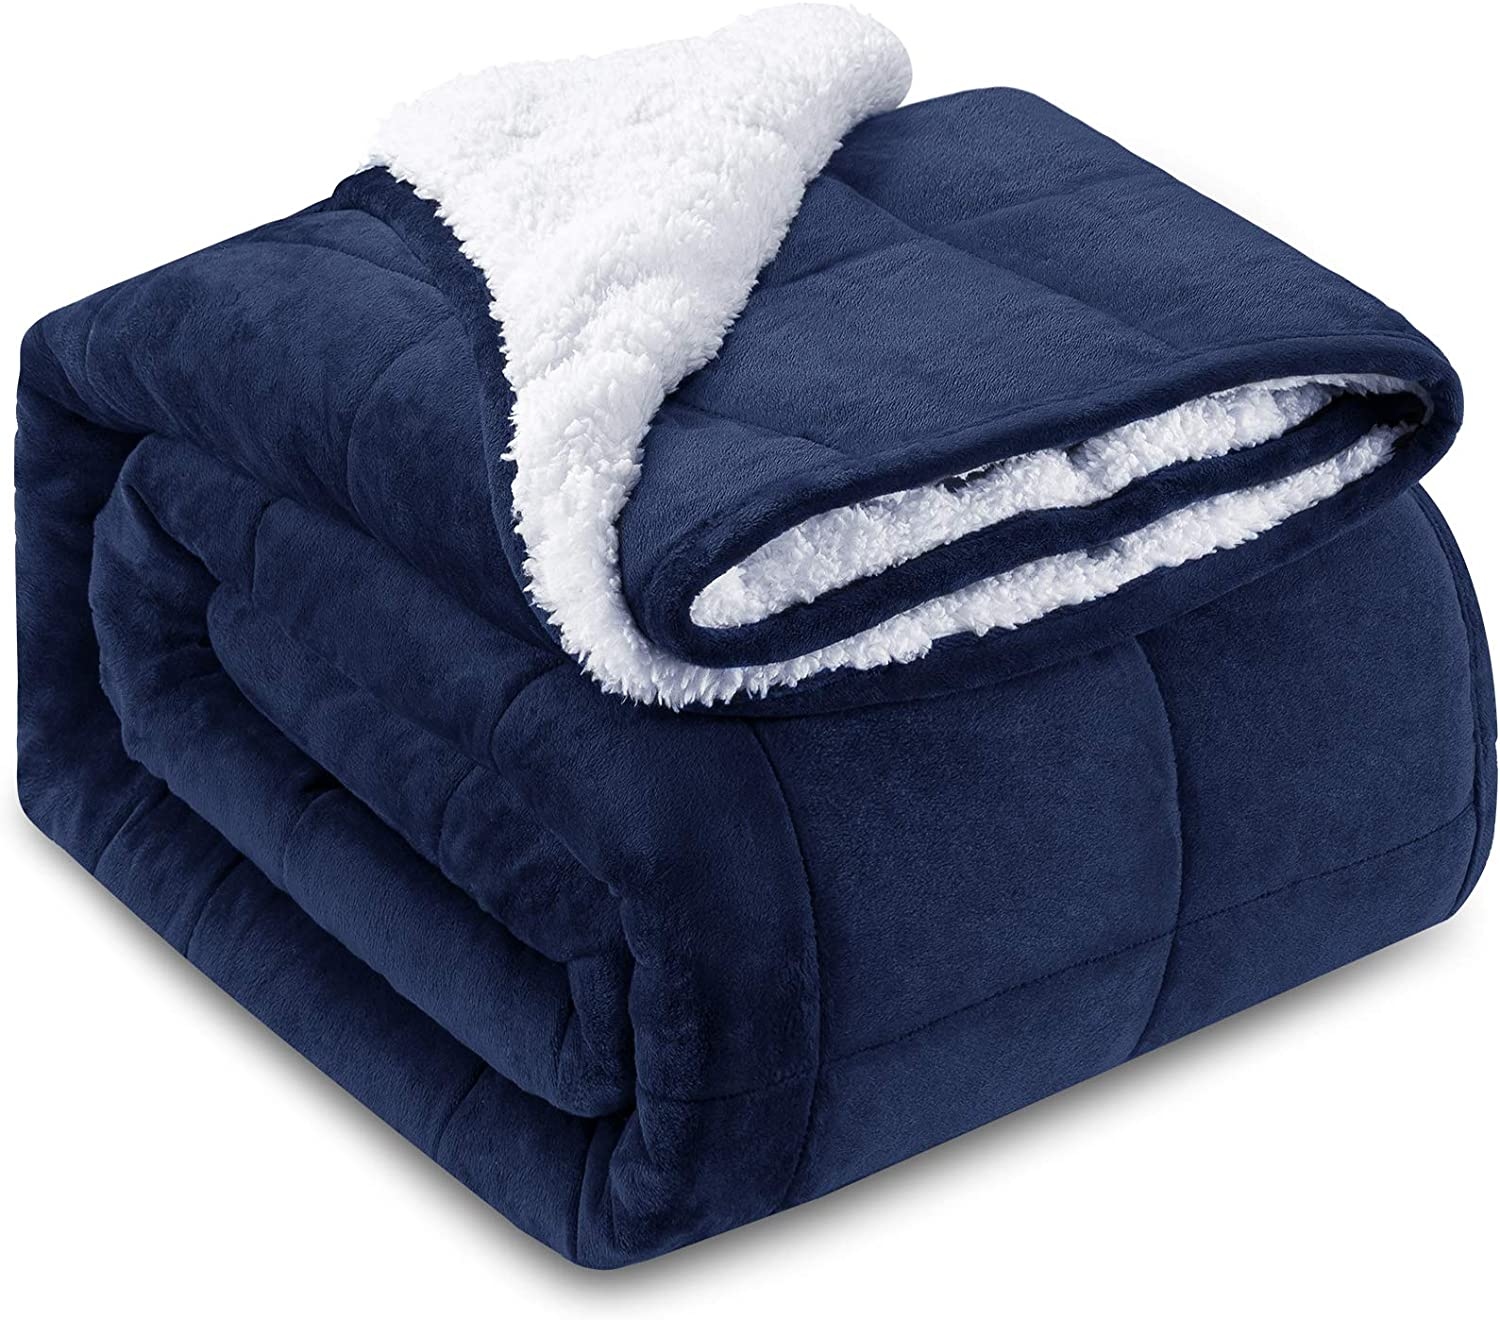 """HBlife Sherpa Fleece Weighted Blanket for Adults, Oeko-Tex Certified 20 lbs Thick Fuzzy Bed Blanket, Heavy Reversible Soft Fleece Blanket with Premium Glass Beads 88"""" x104"""", Navy Blue"""